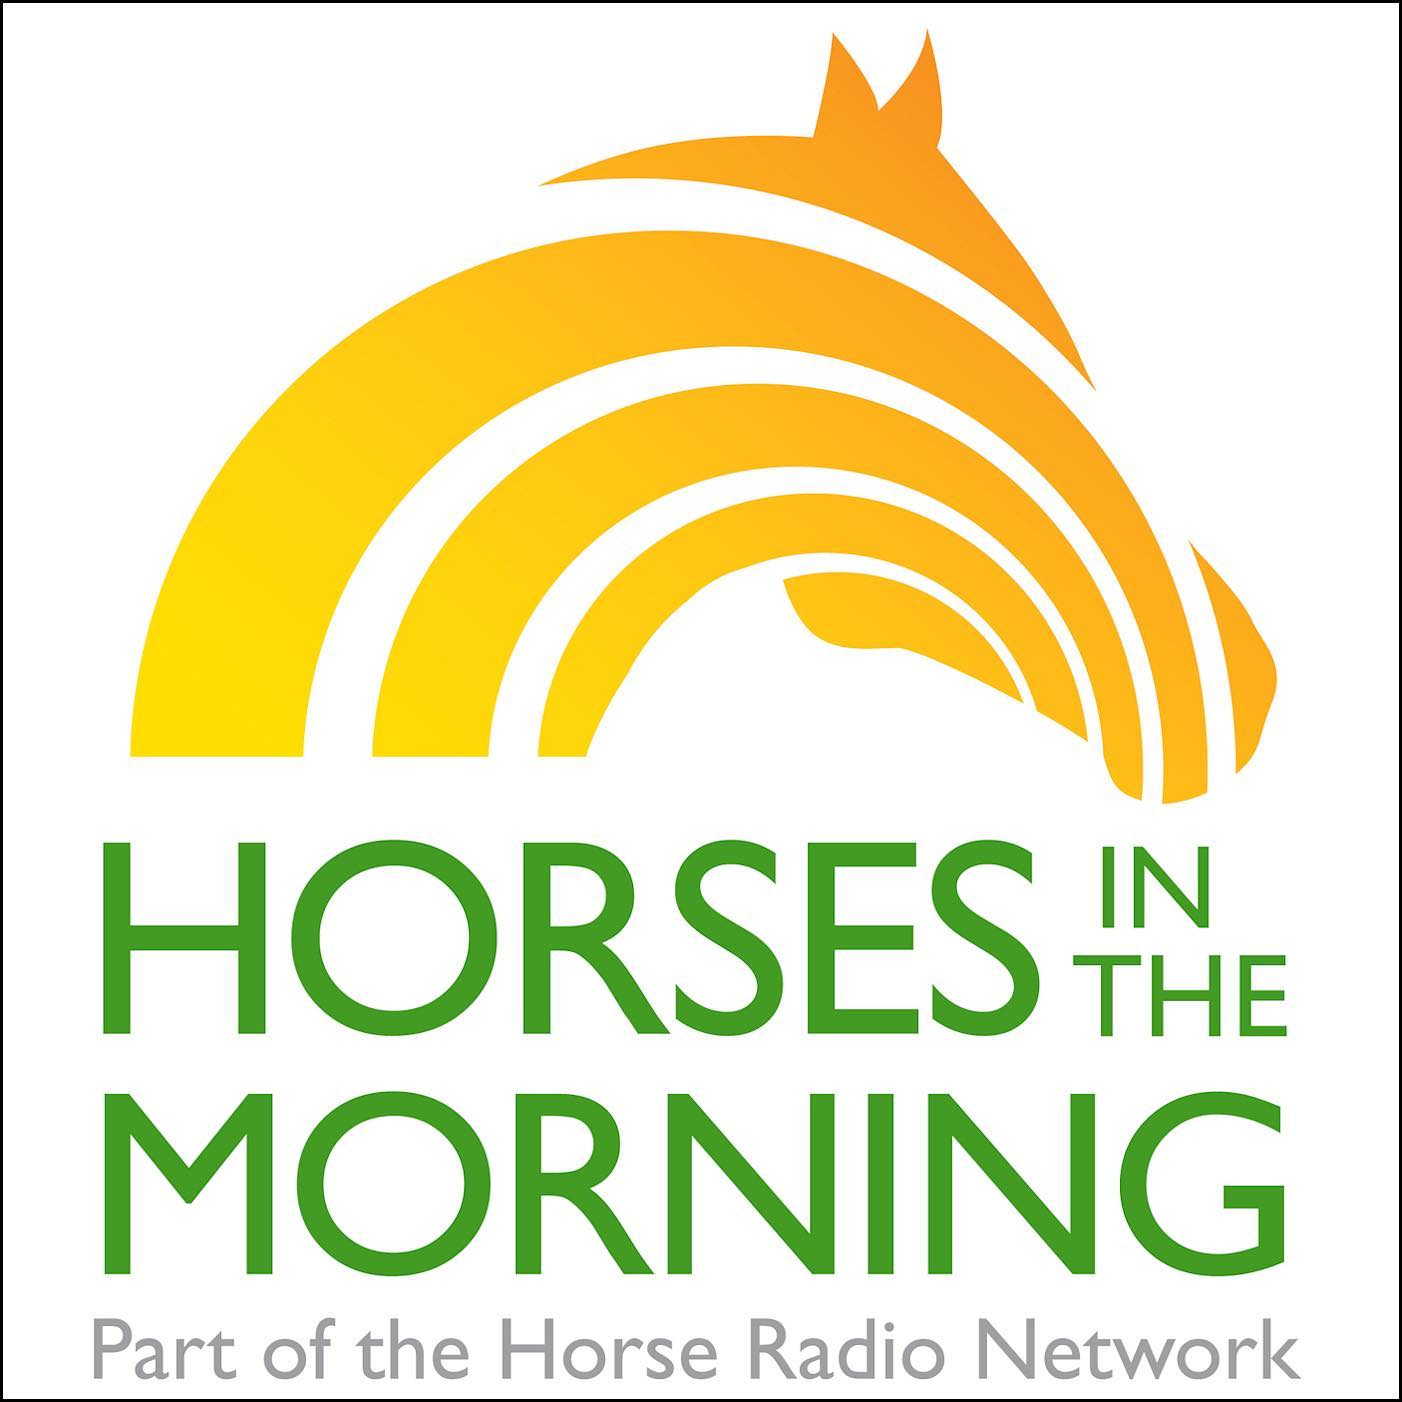 Co-owner, Miranda McBride will be appearing on the popular HORSES IN THE MORNING Radio Show tomorrow March 10th to talk about Manewayz! Listen at www.horsesinthemorning.com iTunes, or your favorite podcatcher.